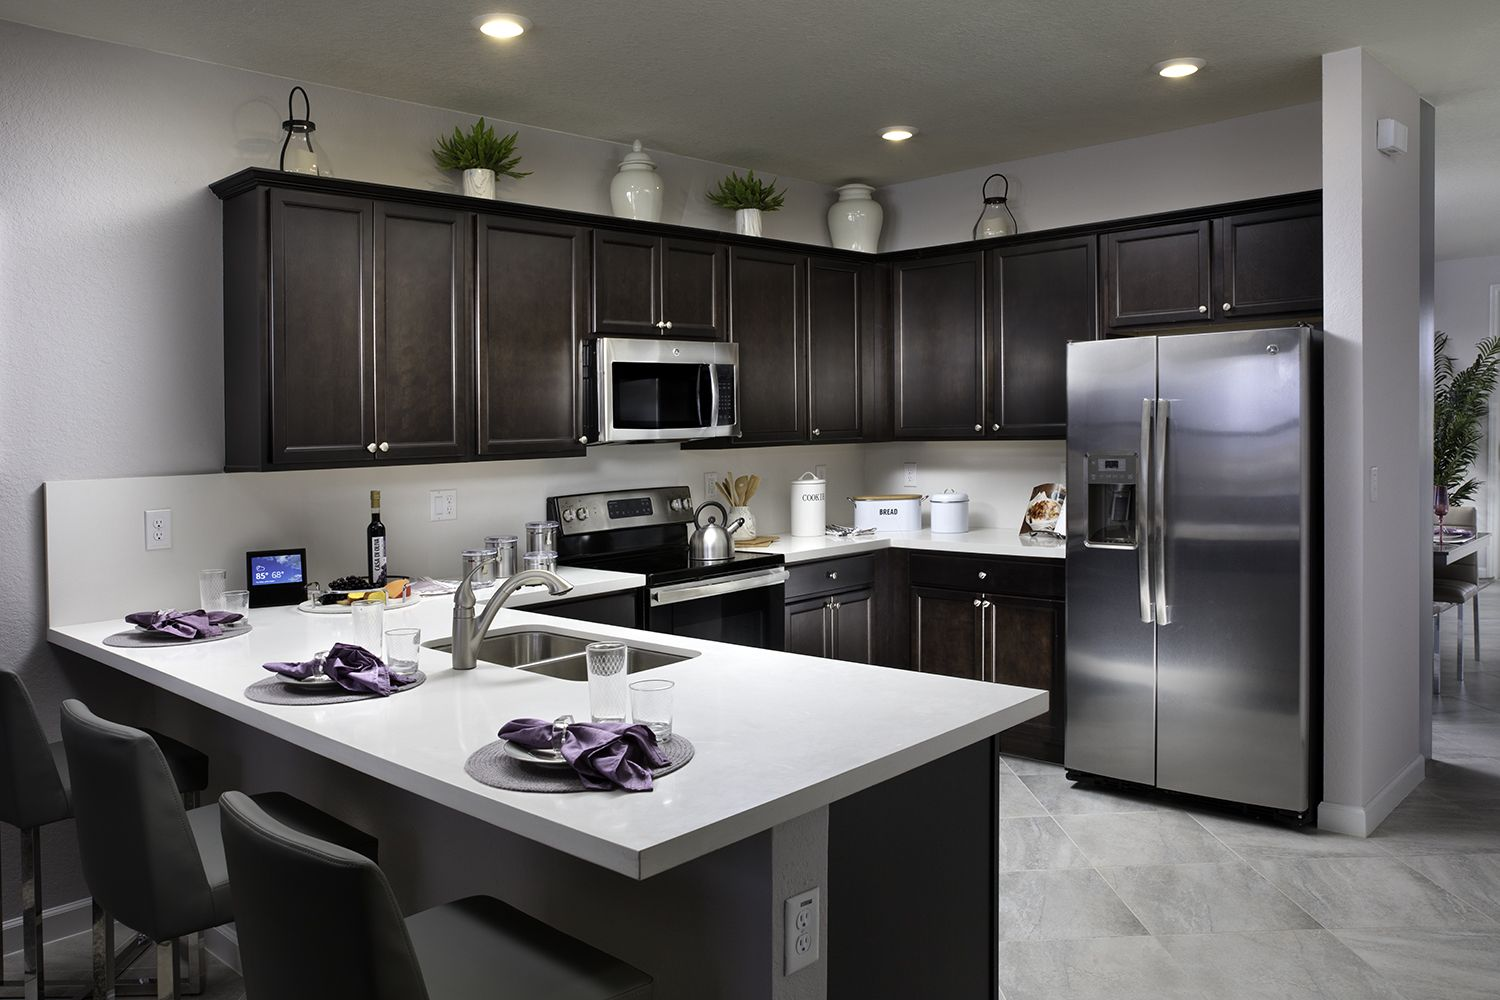 Would Dark Kitchen Cabinets Be A Delight Instead Of Ones That Are White Aquabella In Miami Lakes Fl Kitchen Cabinets Dark Kitchen Cabinets Dark Kitchen